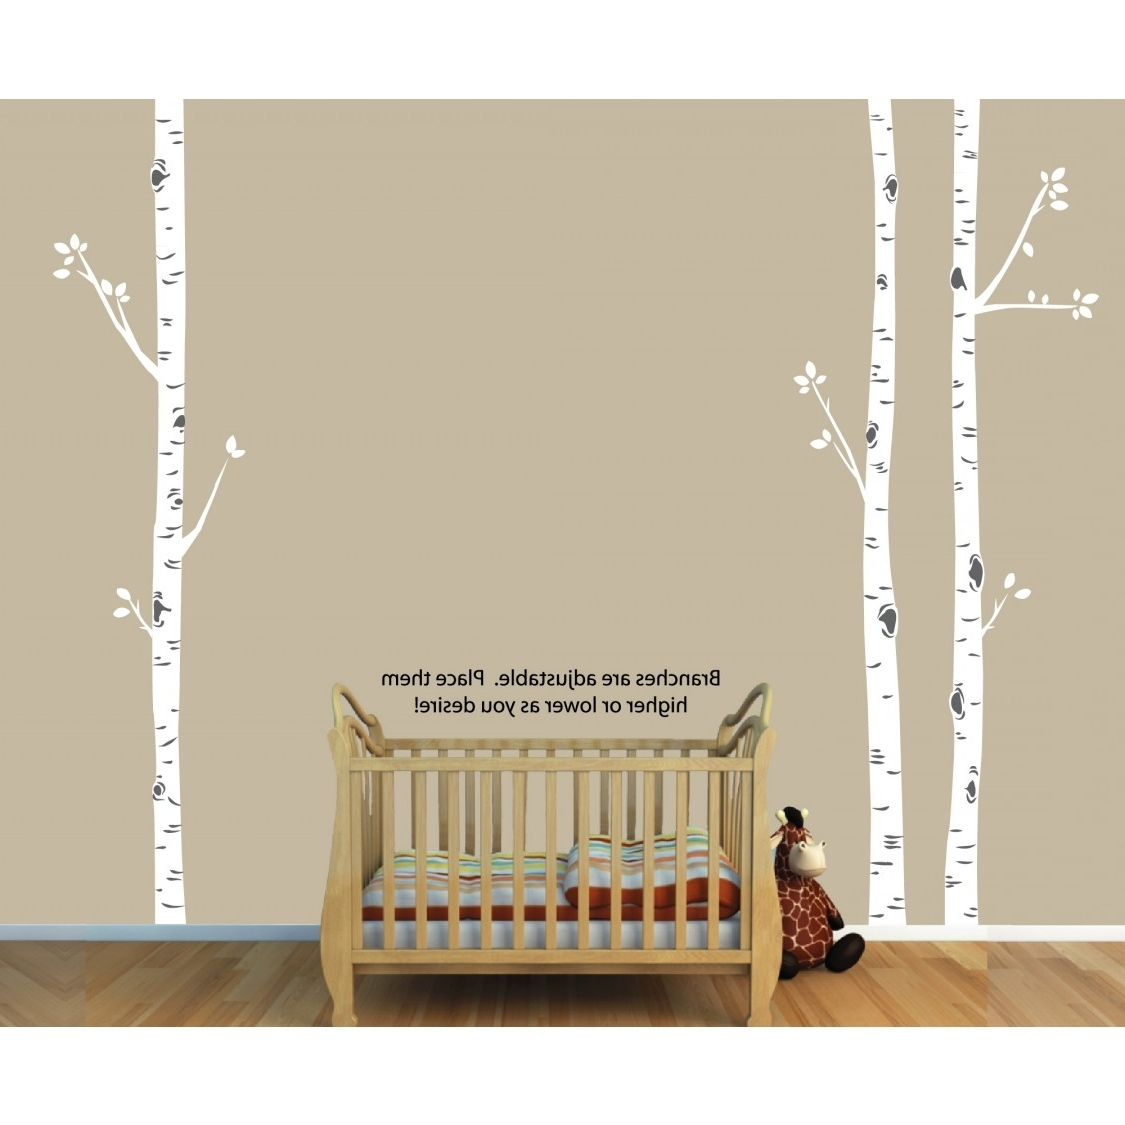 Birch Tree Wall Art In Famous Birch Tree Wall Art And Birch Tree Decals For Nursery For Girls (Gallery 10 of 20)